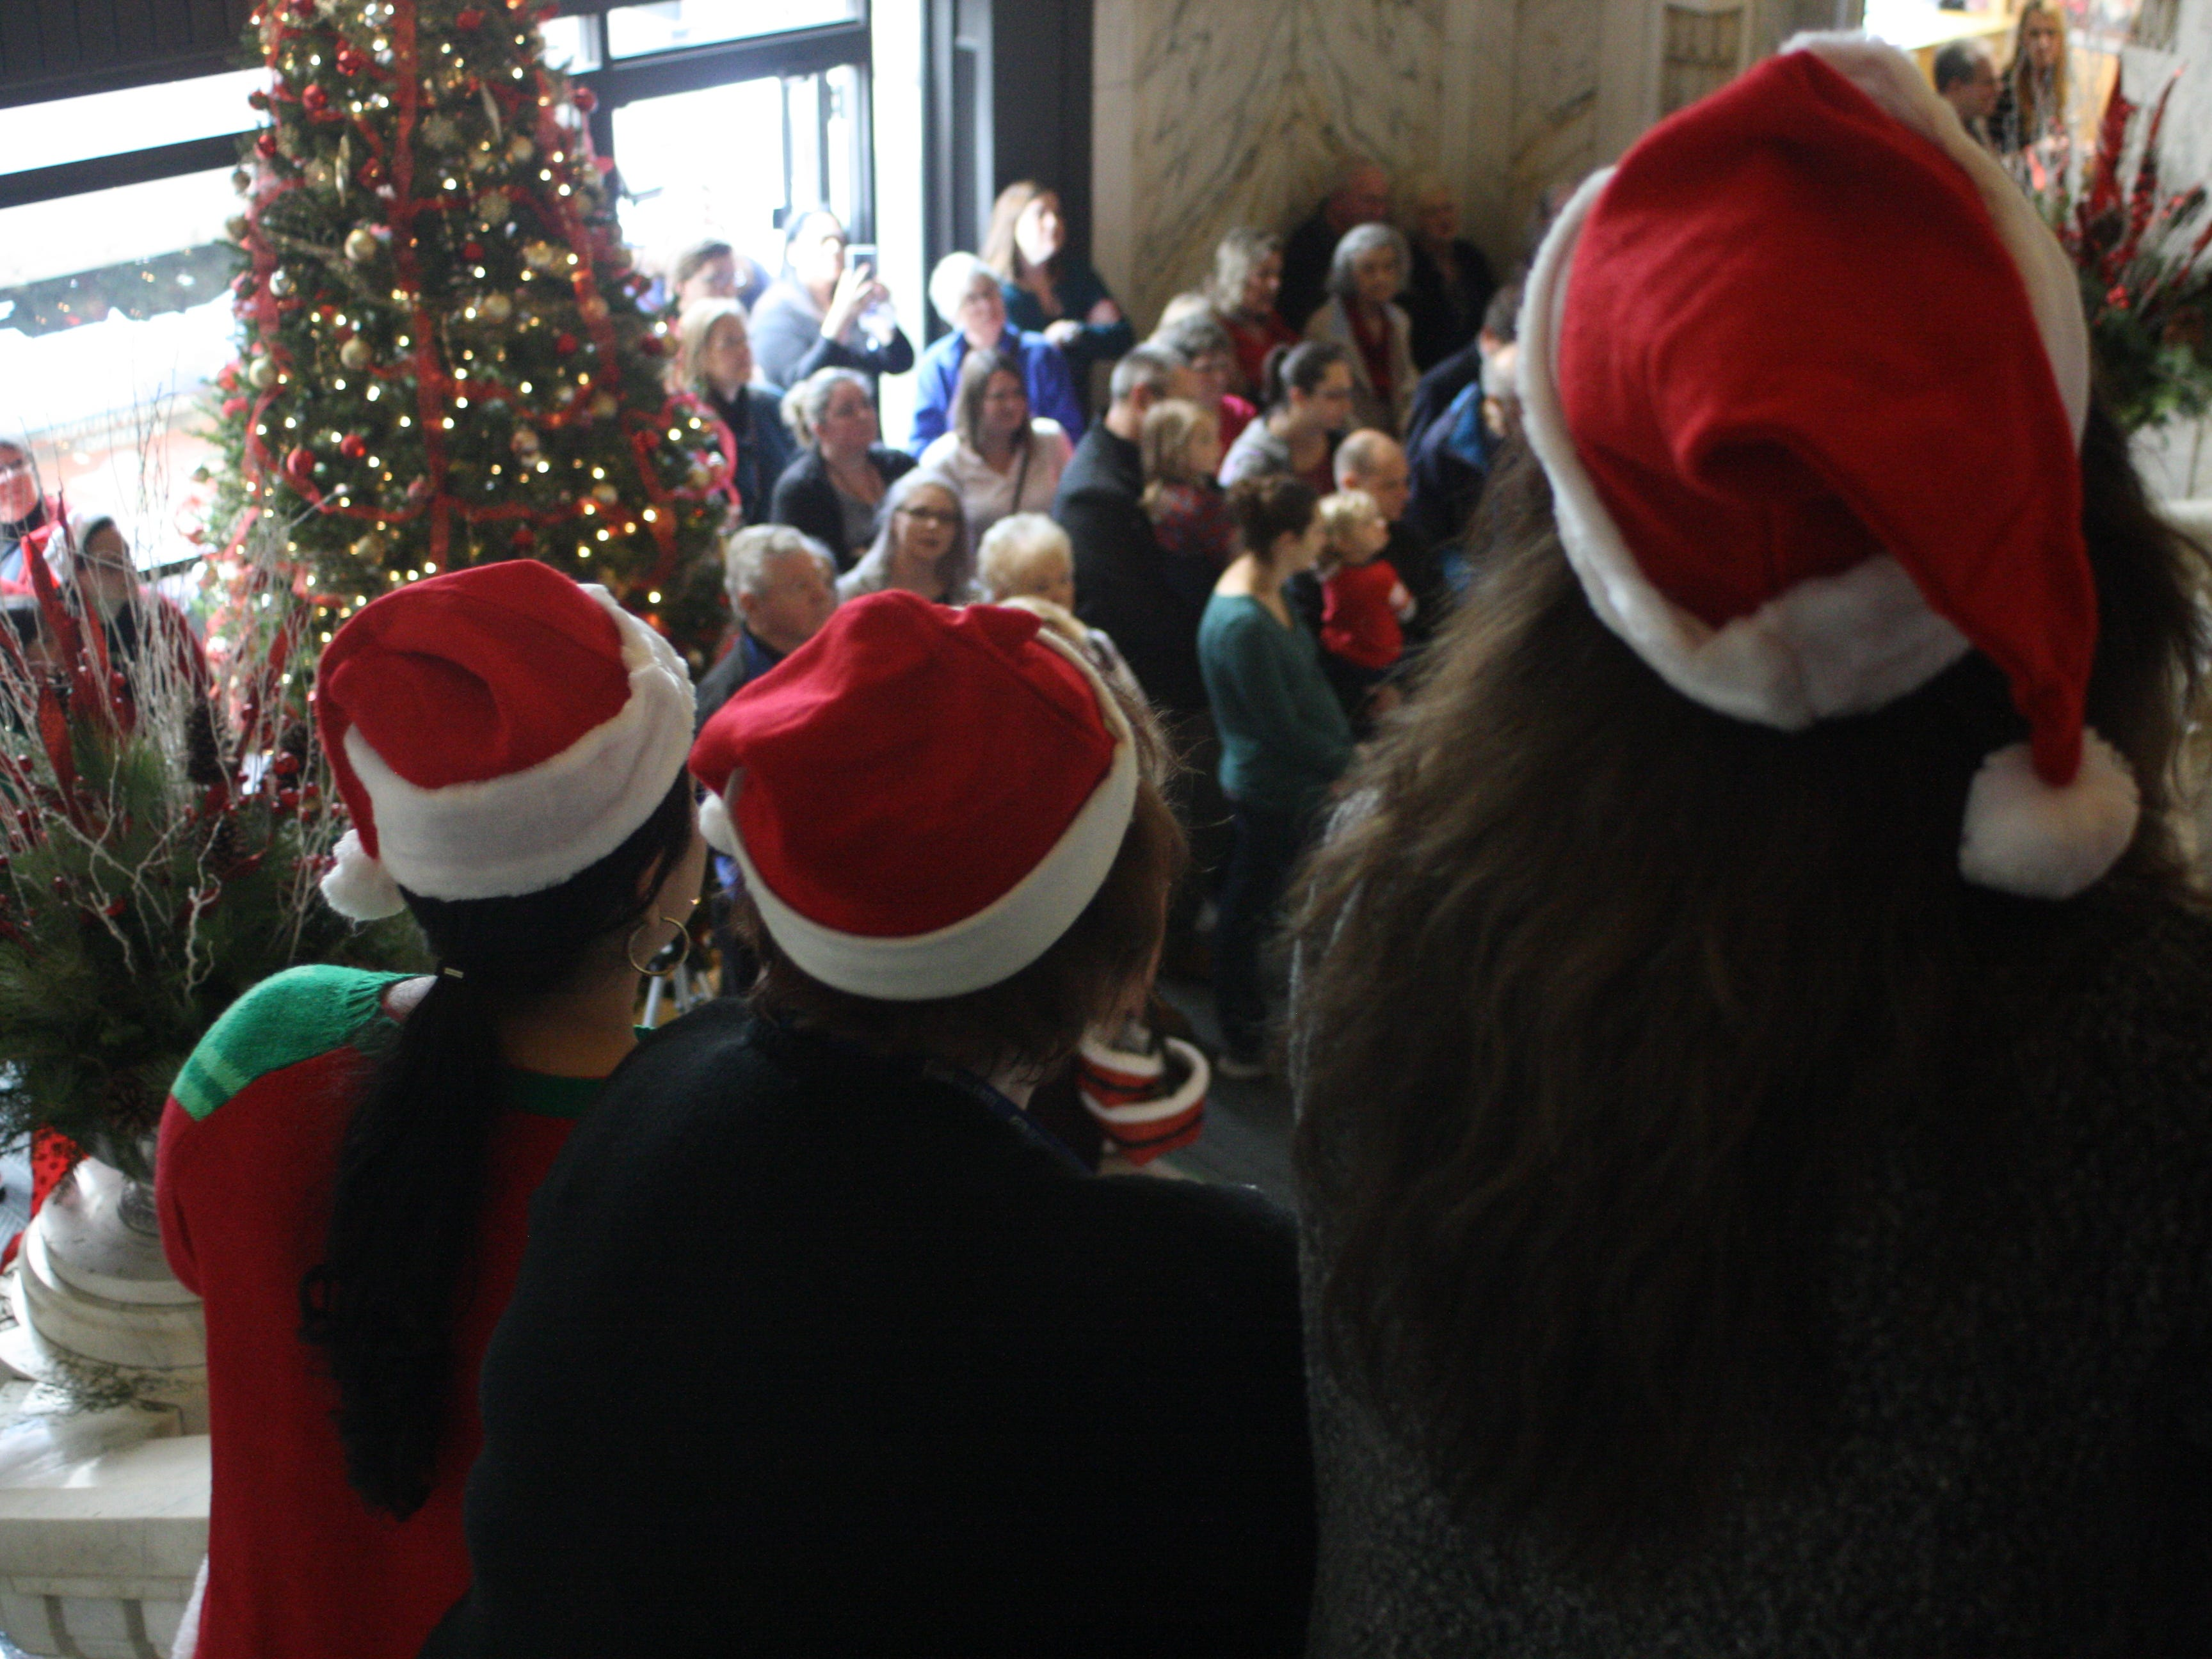 Security Mutual employees continued an annual tradition by singing Christmas carols in the company's lobby in Downtown Binghamton Friday afternoon.